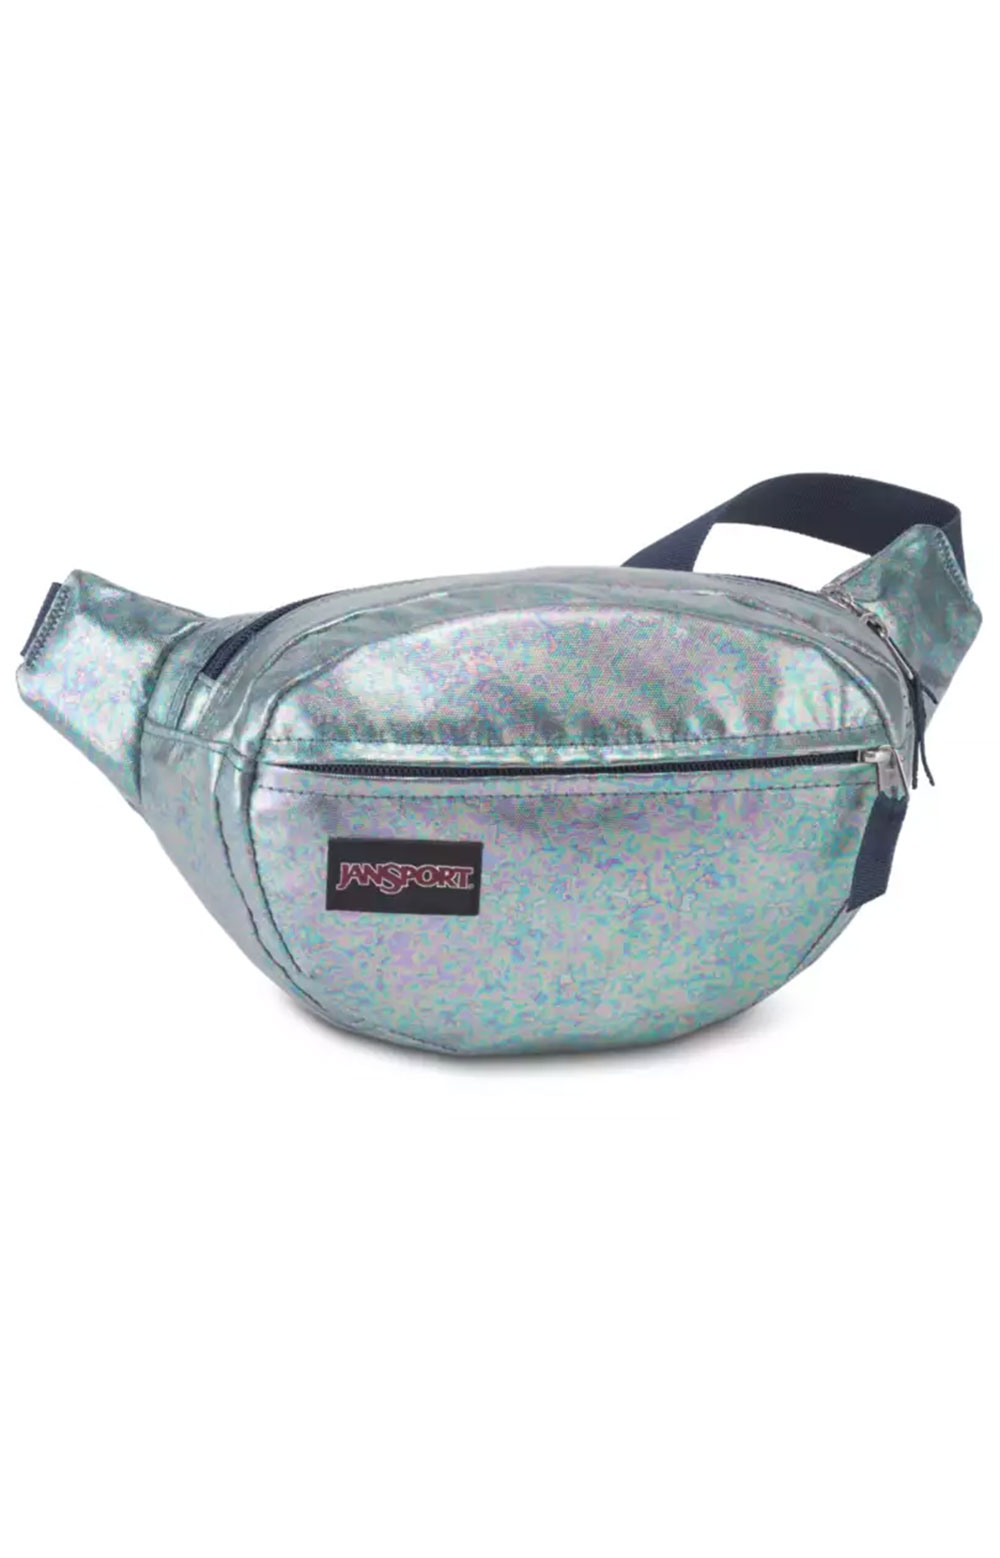 Fifth Avenue FX Fanny Pack - Mermaid Pearlized Shine 2